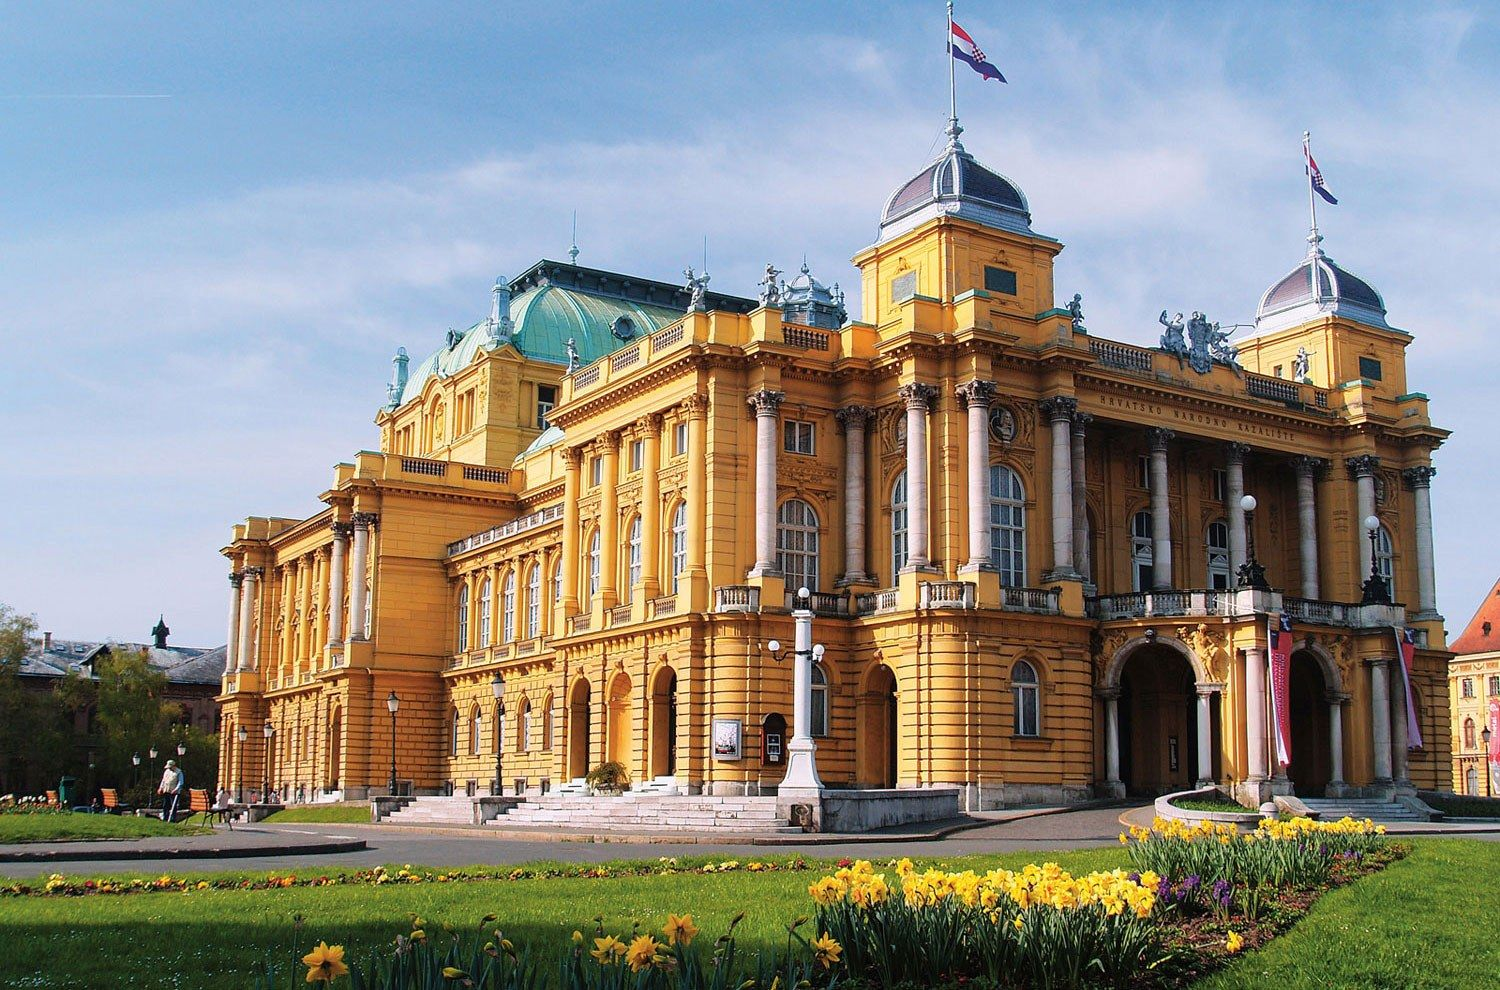 Croatian National Theatre In Zagreb Is A Theatre Opera And Ballet House Lobagolabnb Zagreb Visit Croatia Love Croatia Zagreb Croatia City